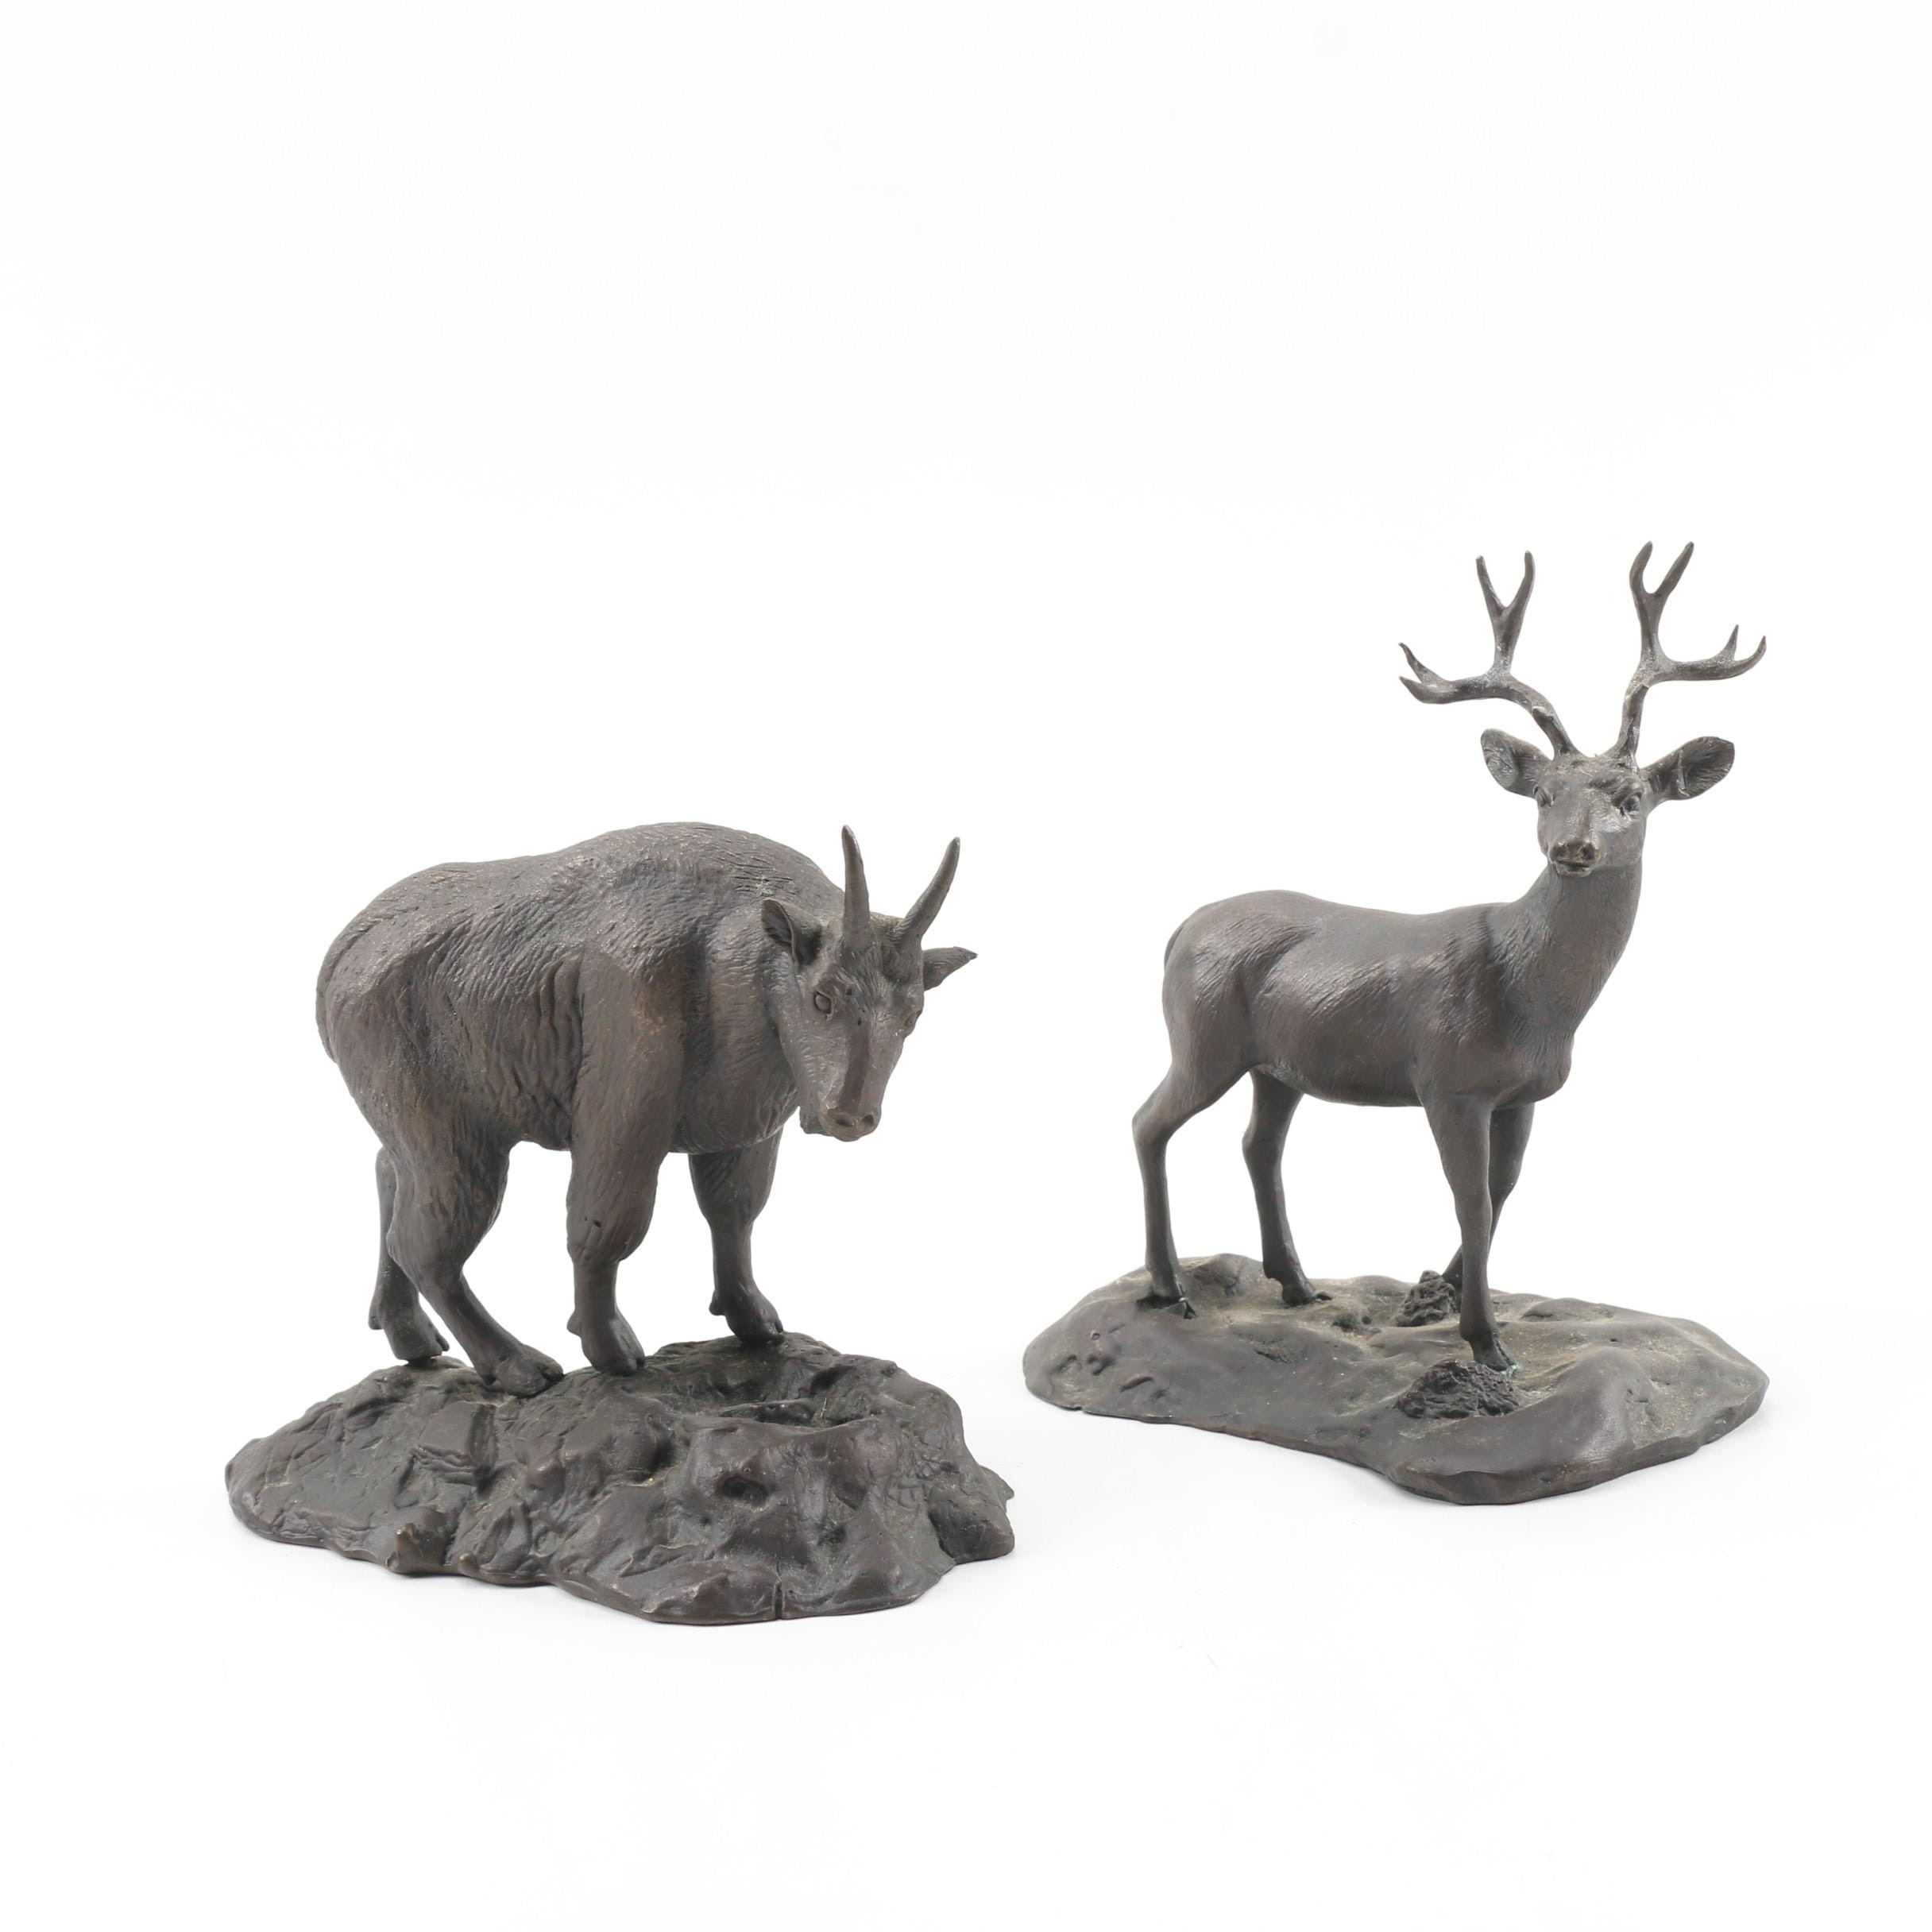 M. Riley Austin Limited Edition Bronze Stag and Mountain Goat Figurines